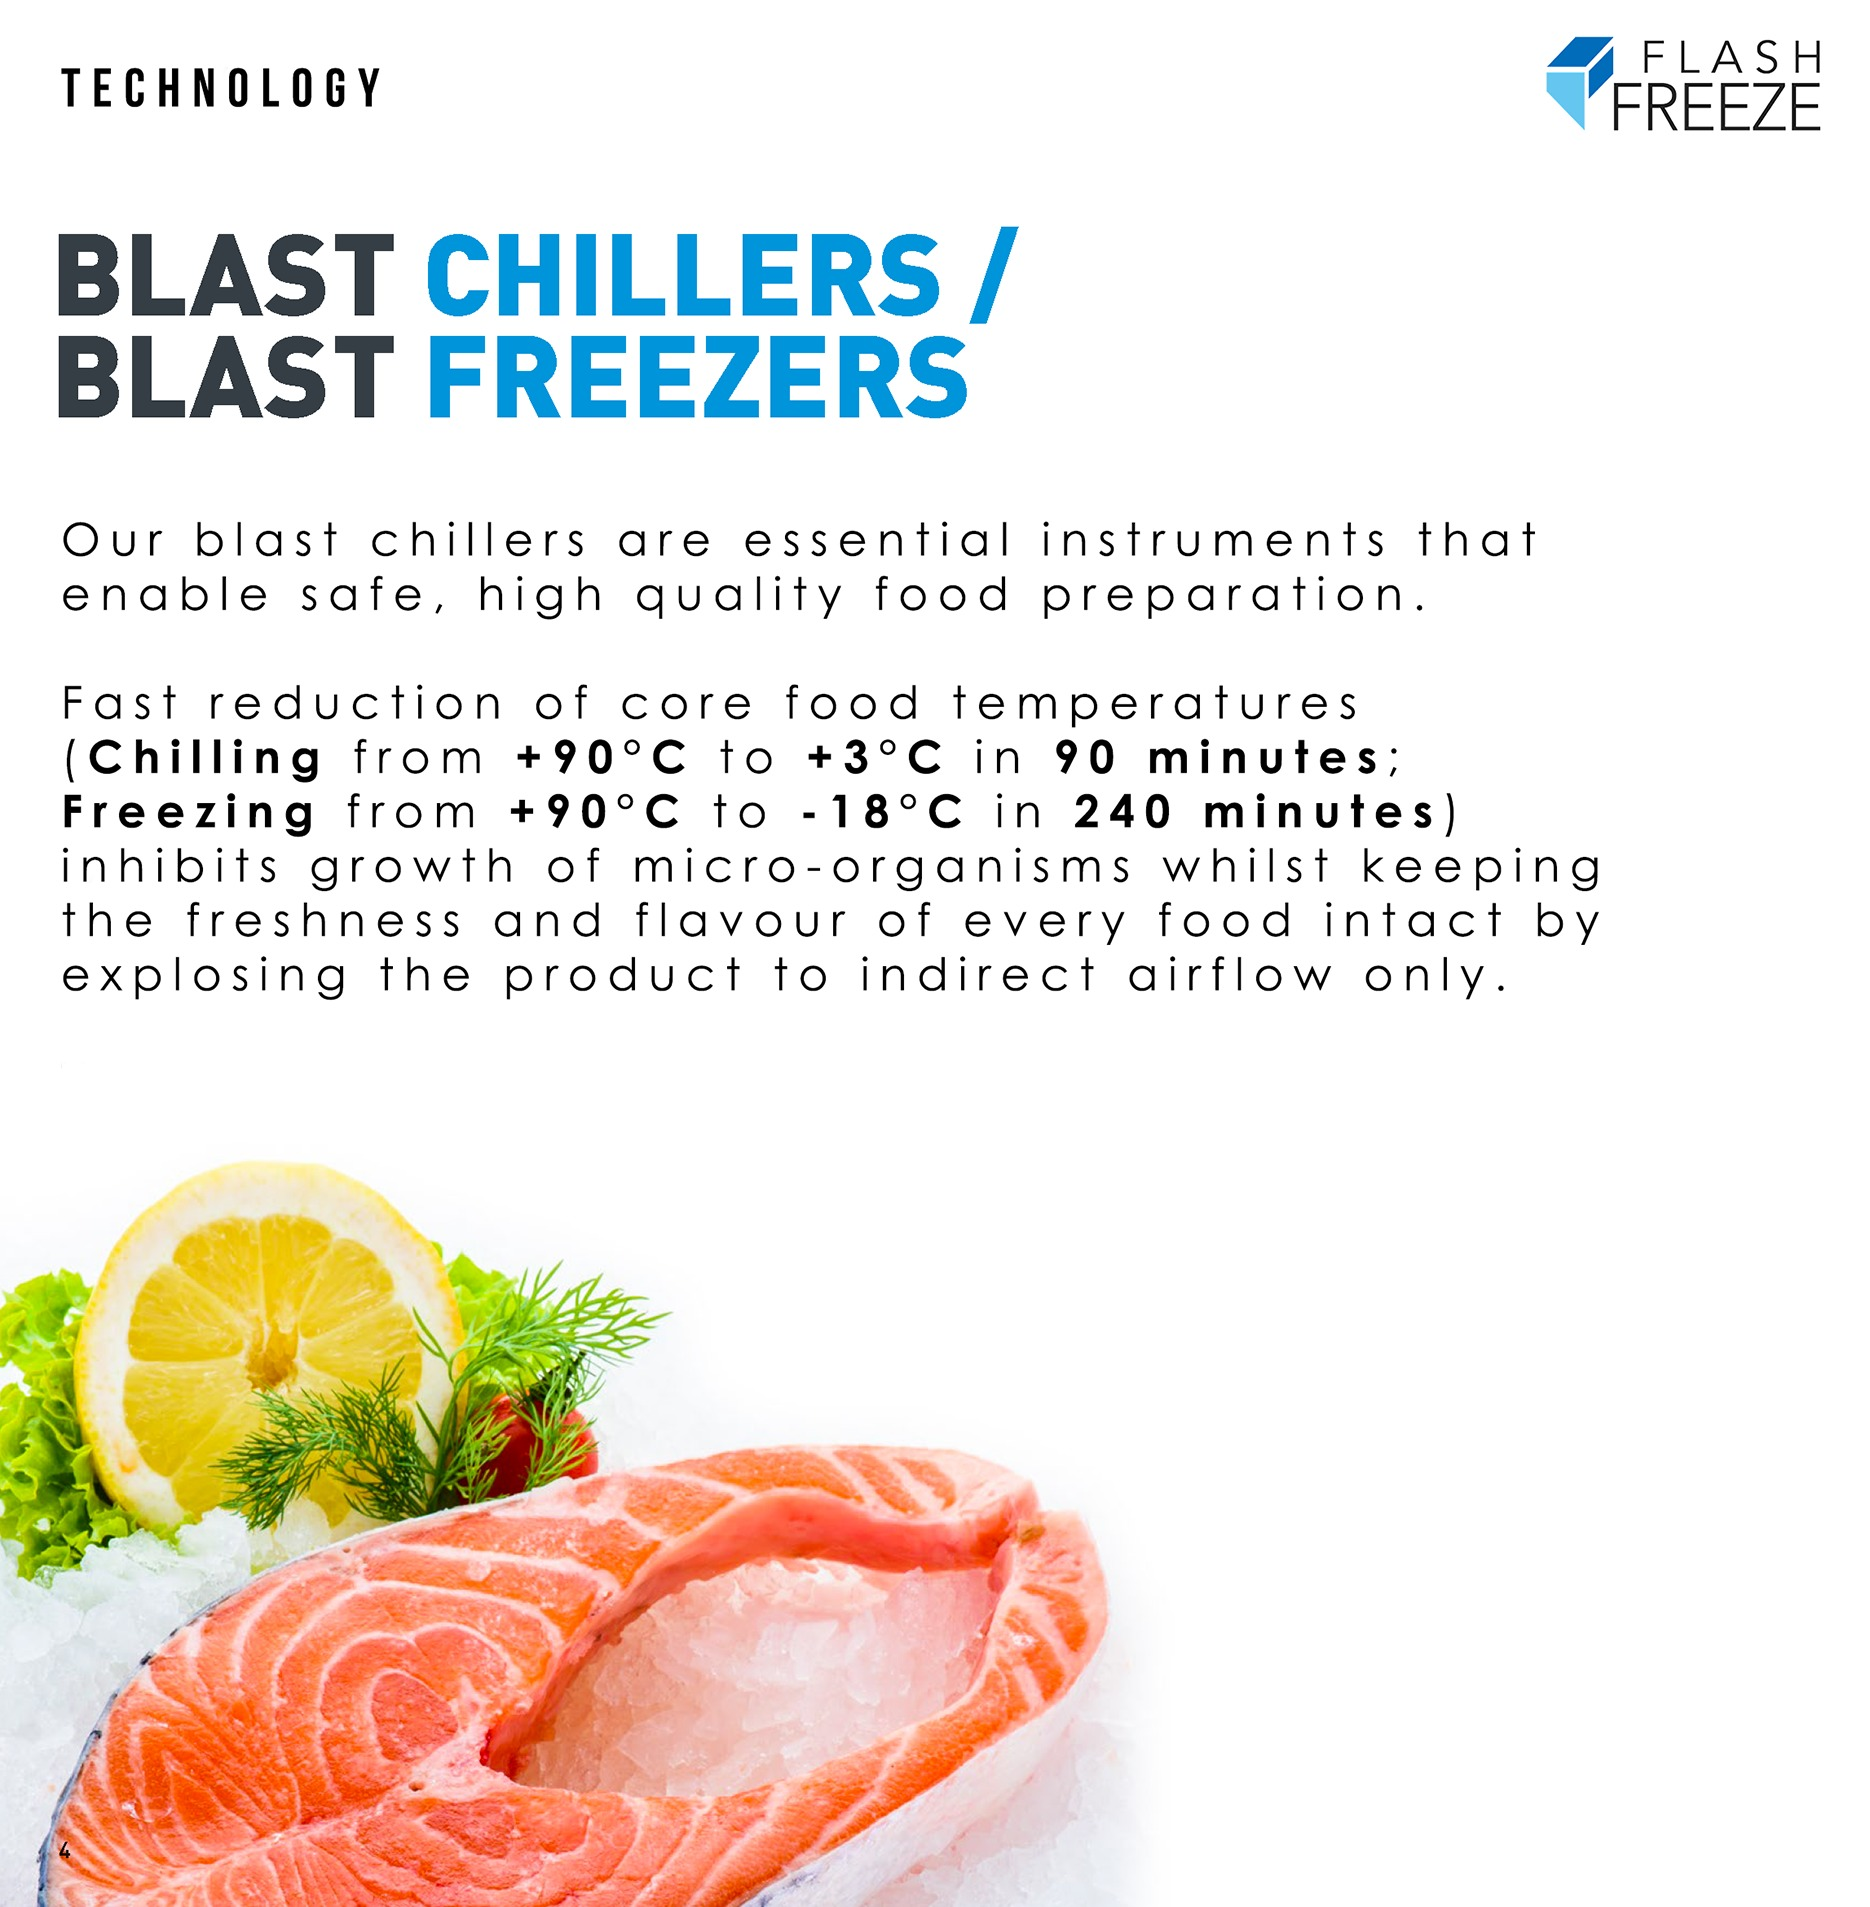 Blast Chiller Freezer Description